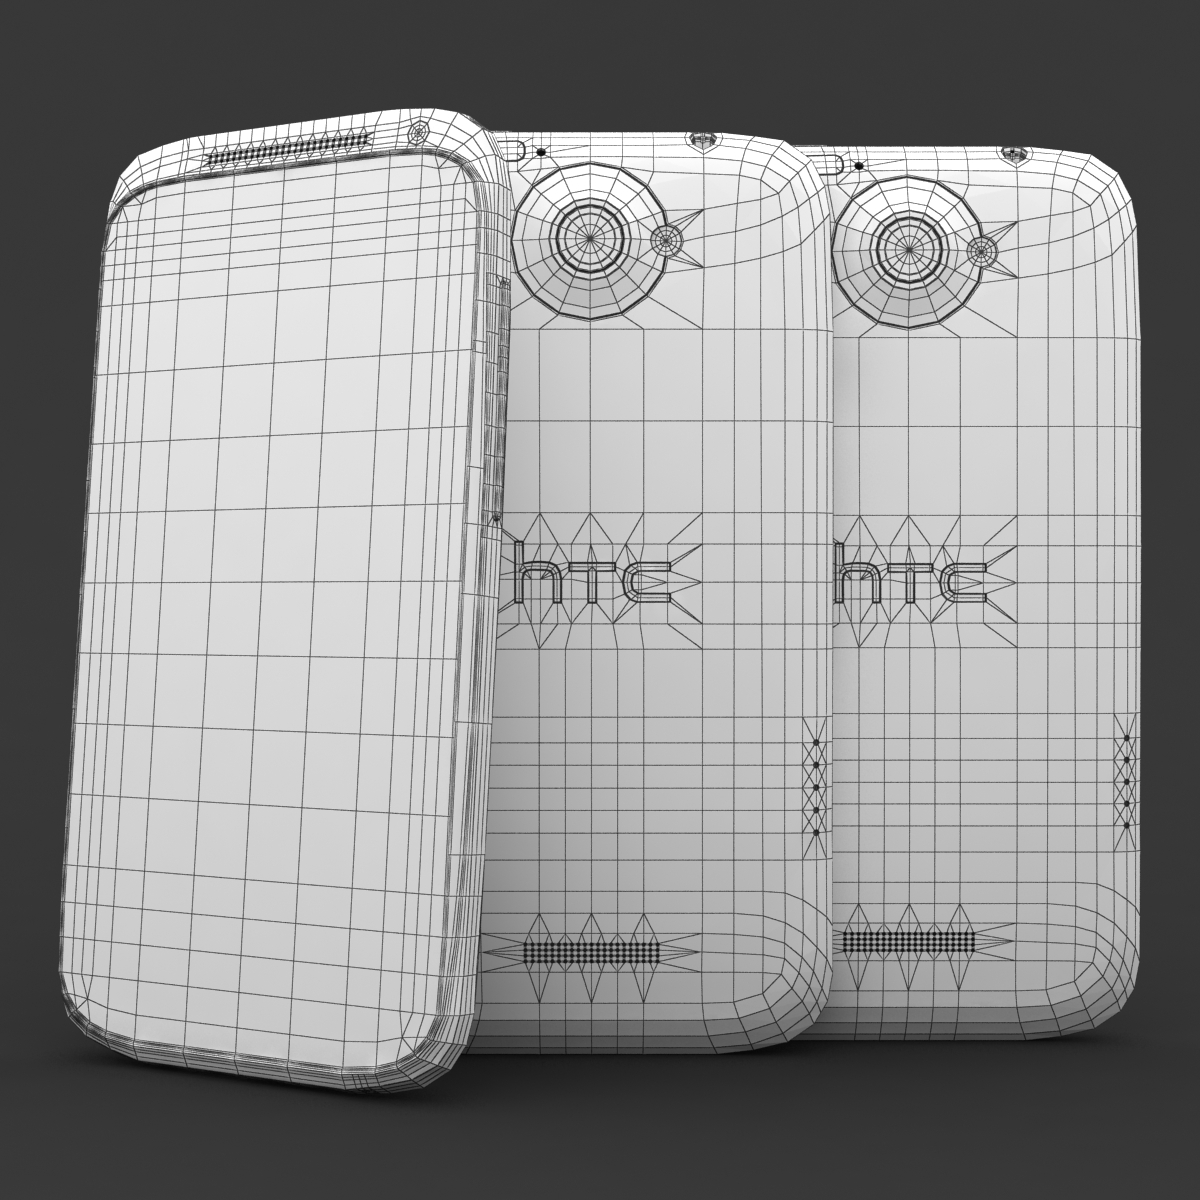 htc one x+ black and white 3d model 3ds max fbx c4d lwo obj 151435